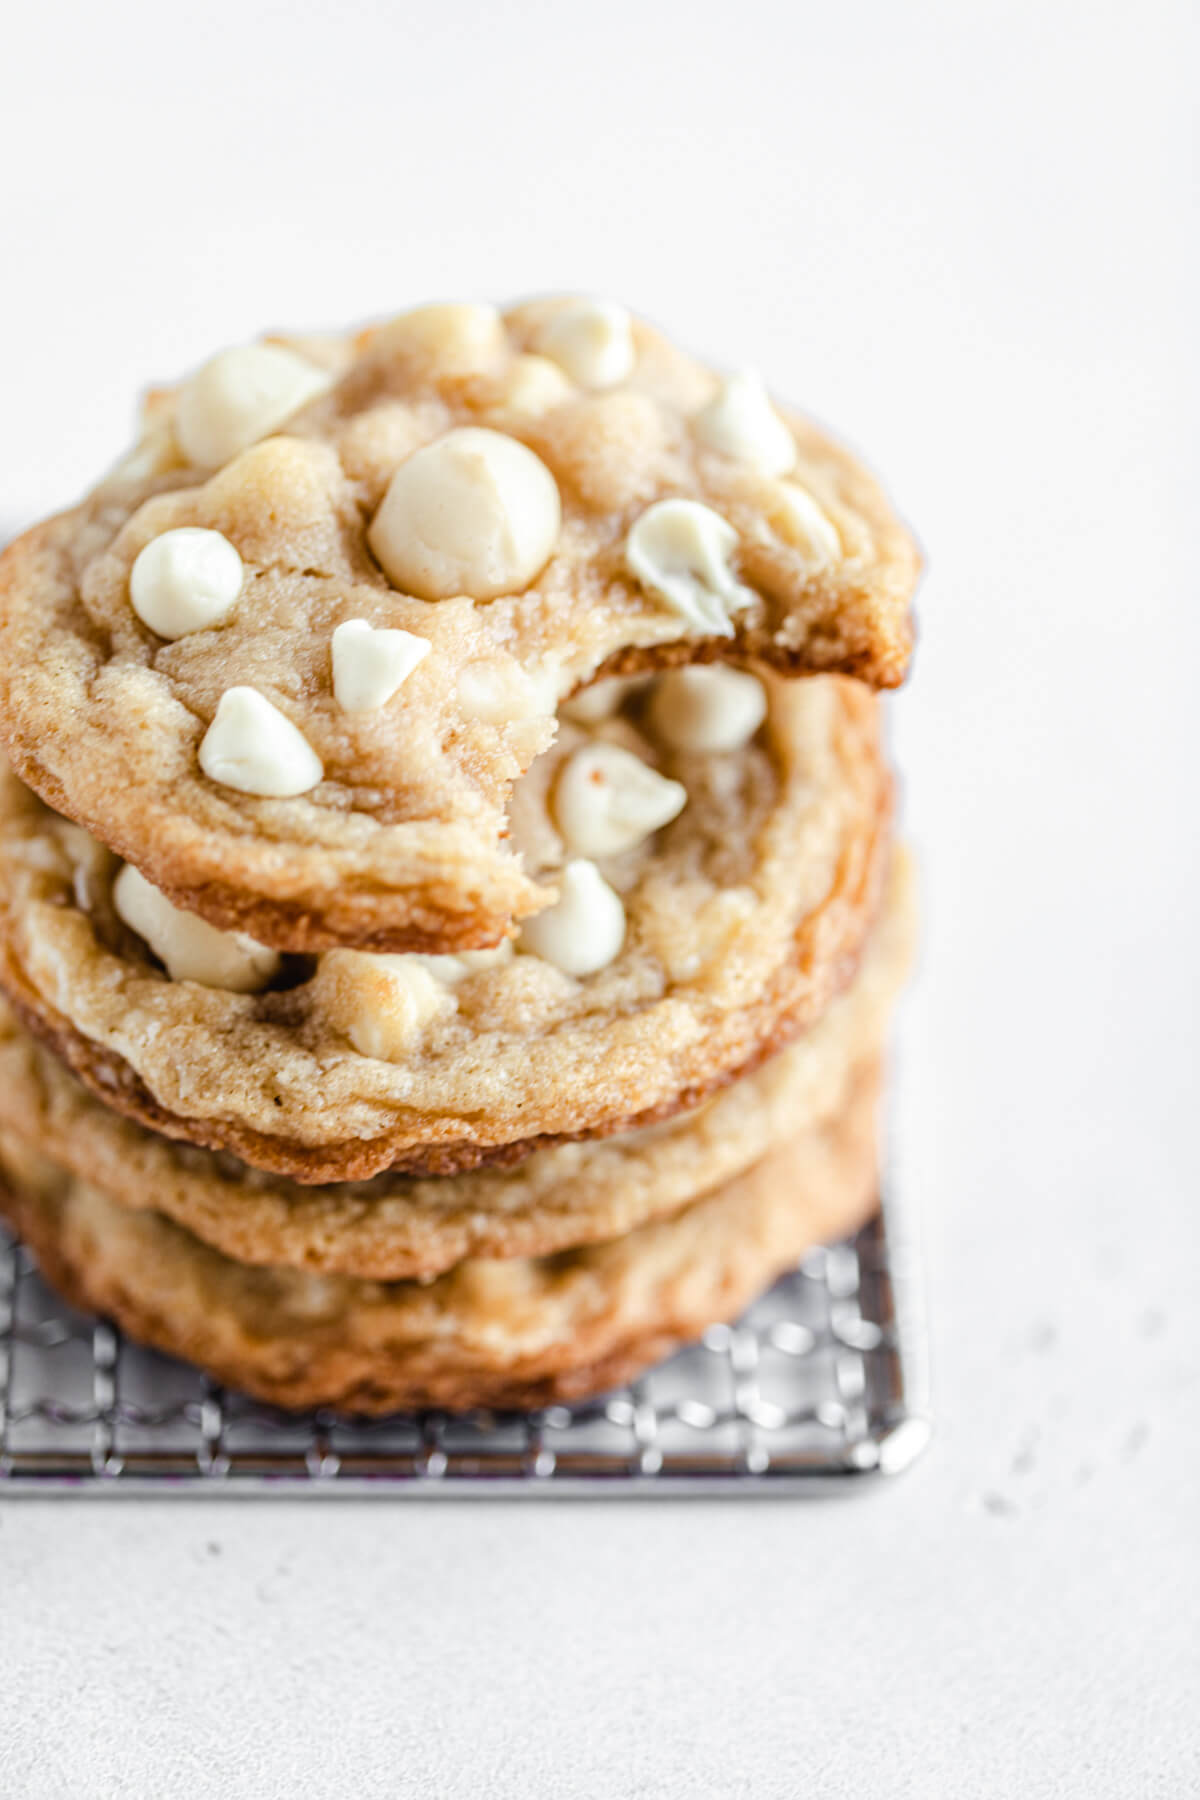 stack of cookies with a bite taken out of the top one